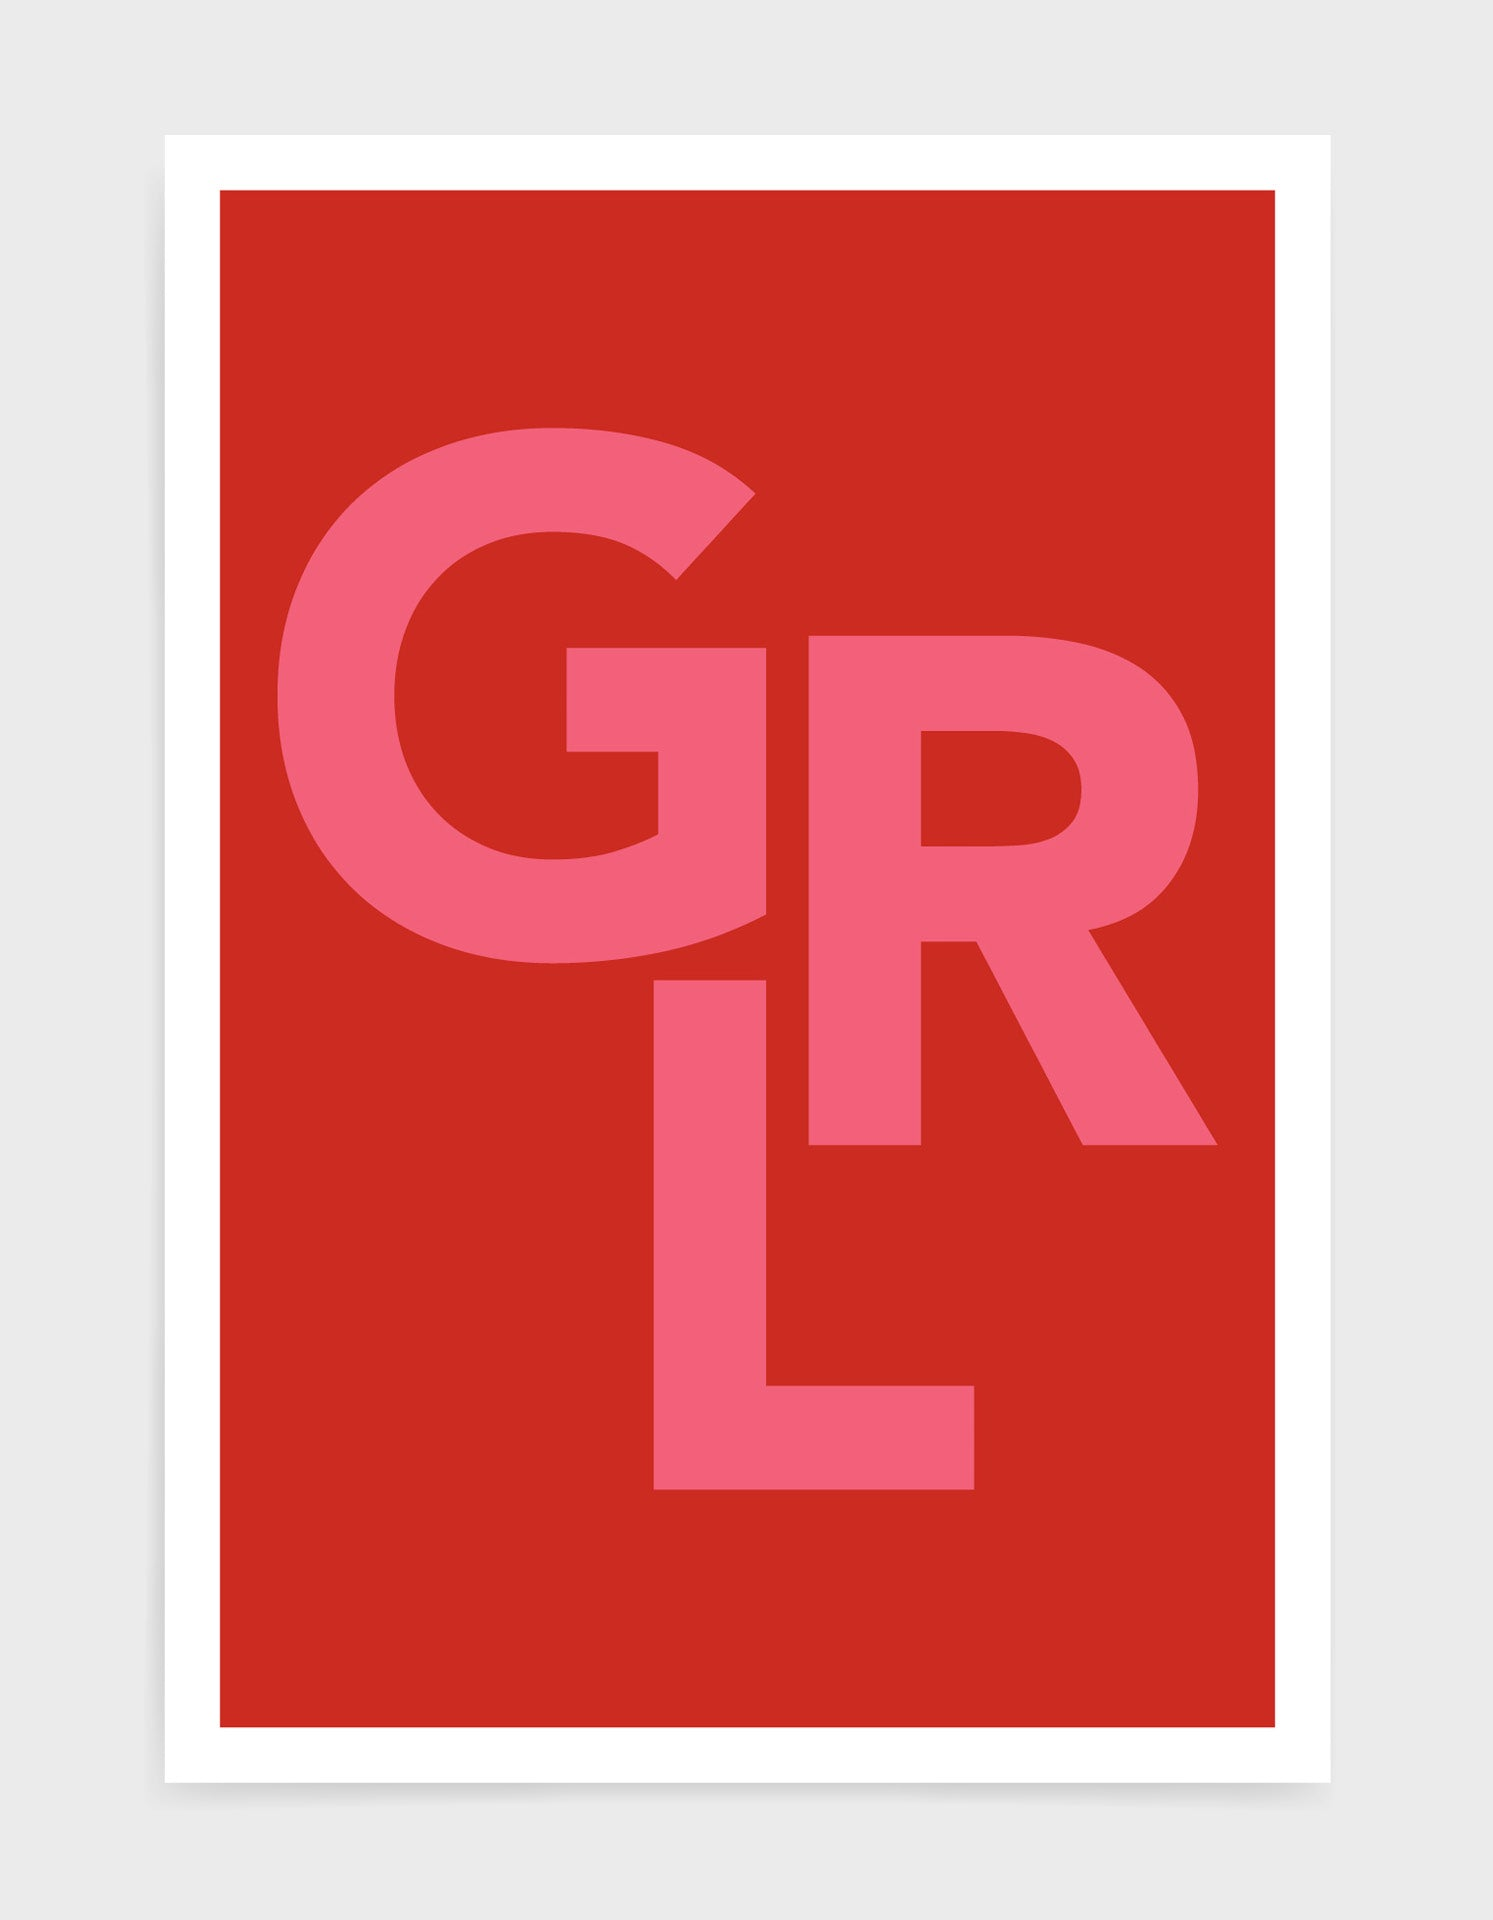 typography art print of the word GRL in pink text against a red background